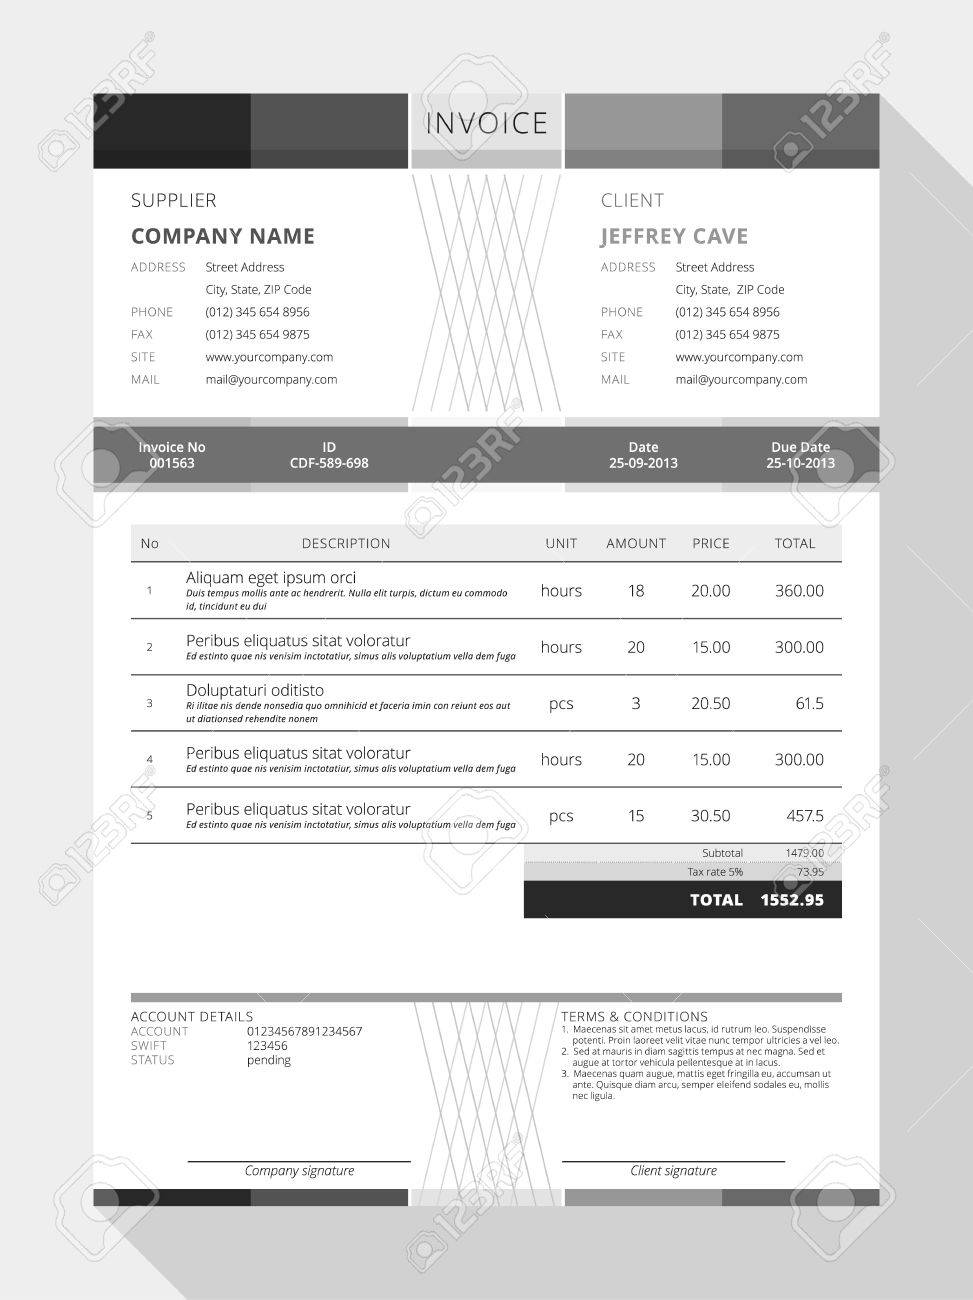 Ebitus  Mesmerizing Design An Invoice  Professional Graphic Design Invoice  With Glamorous Vector Customizable Invoice Form Template Design Vector   Design An Invoice With Comely Invoice Processing Best Practices Also Transportation Invoice Template In Addition Infiniti Qx Invoice Price And Create A Invoice Template As Well As Self Employed Invoice Additionally Labor Invoice Template Free From Happytomco With Ebitus  Glamorous Design An Invoice  Professional Graphic Design Invoice  With Comely Vector Customizable Invoice Form Template Design Vector   Design An Invoice And Mesmerizing Invoice Processing Best Practices Also Transportation Invoice Template In Addition Infiniti Qx Invoice Price From Happytomco